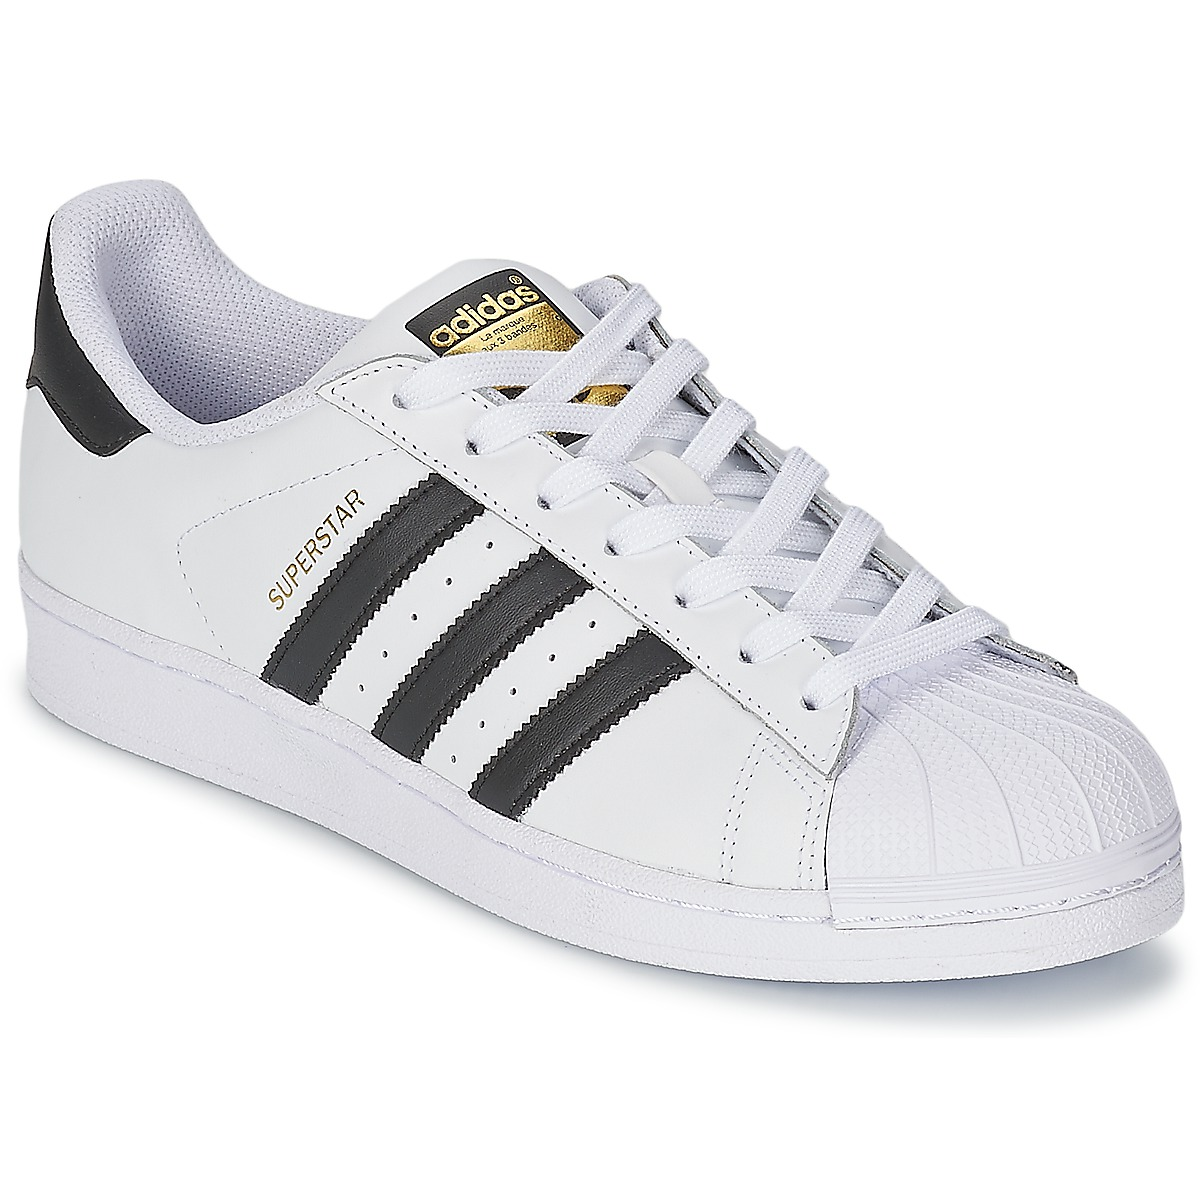 adidas Originals SUPERSTAR Vit / Svart